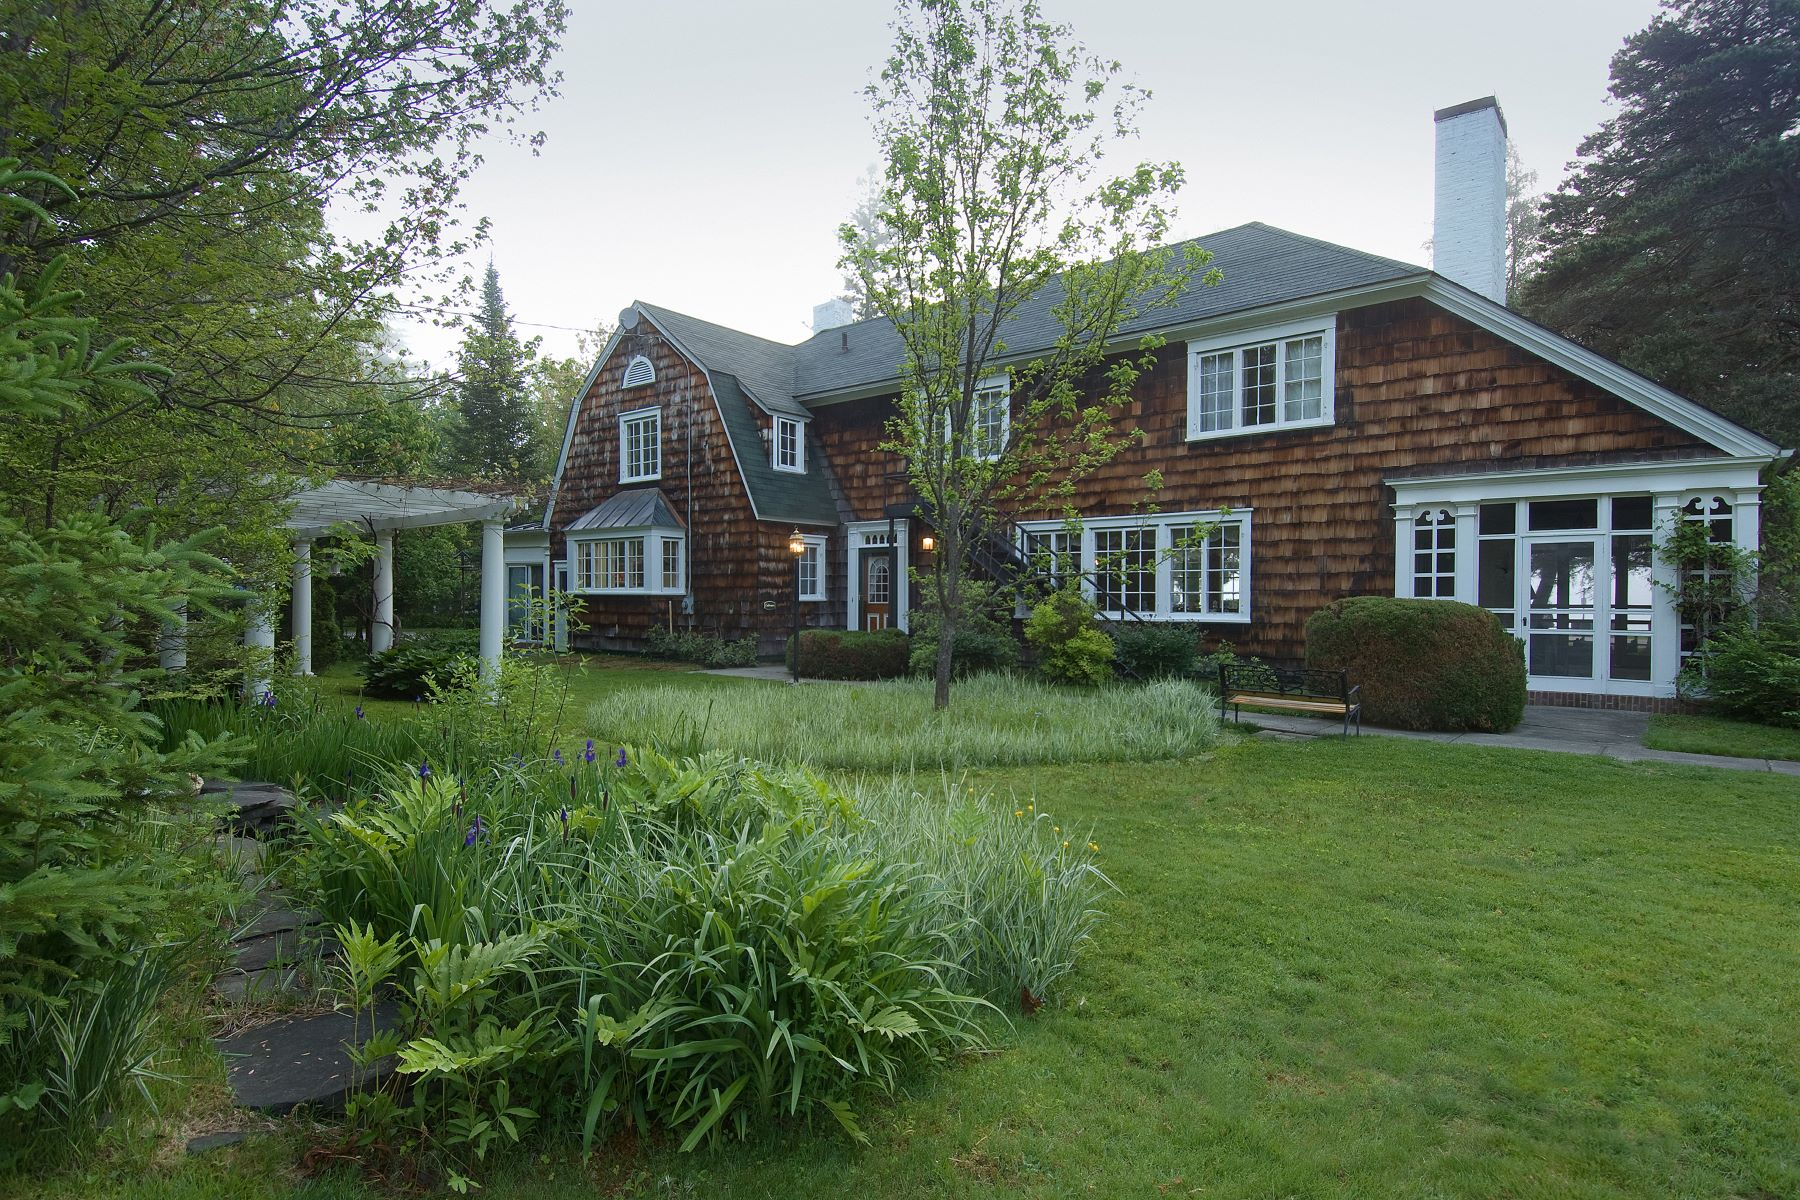 Bed and Breakfast Homes للـ Sale في Madison, Maine 04950 United States